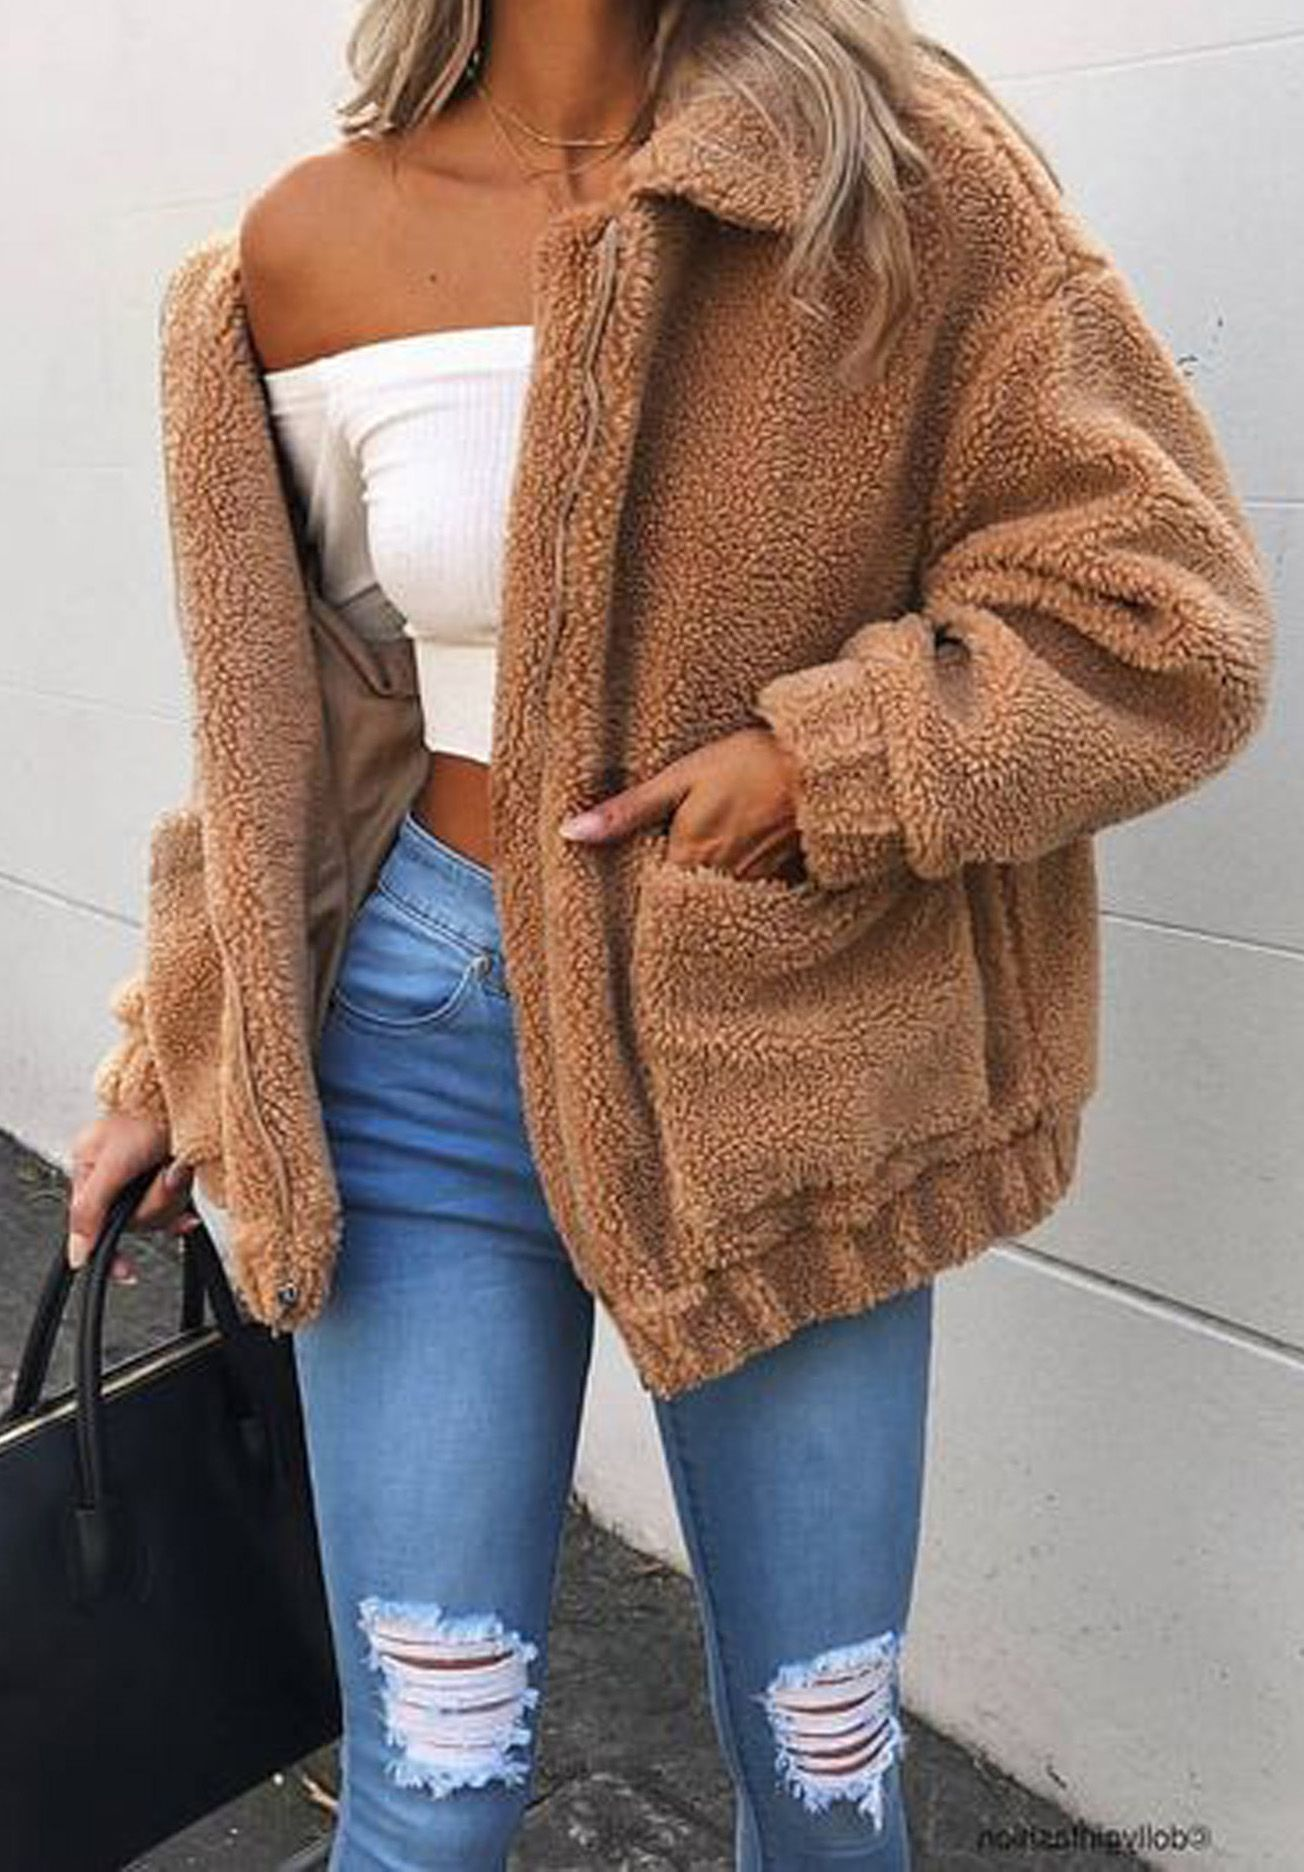 71f5af1d277 Cute Cozy Warm Fall Back to School Outfit Ideas for Teens for College -  Aurora Popular Oversized Soft Comfy Sherpa Teddy Jacket Pixie Coat I am gia  dupe ...